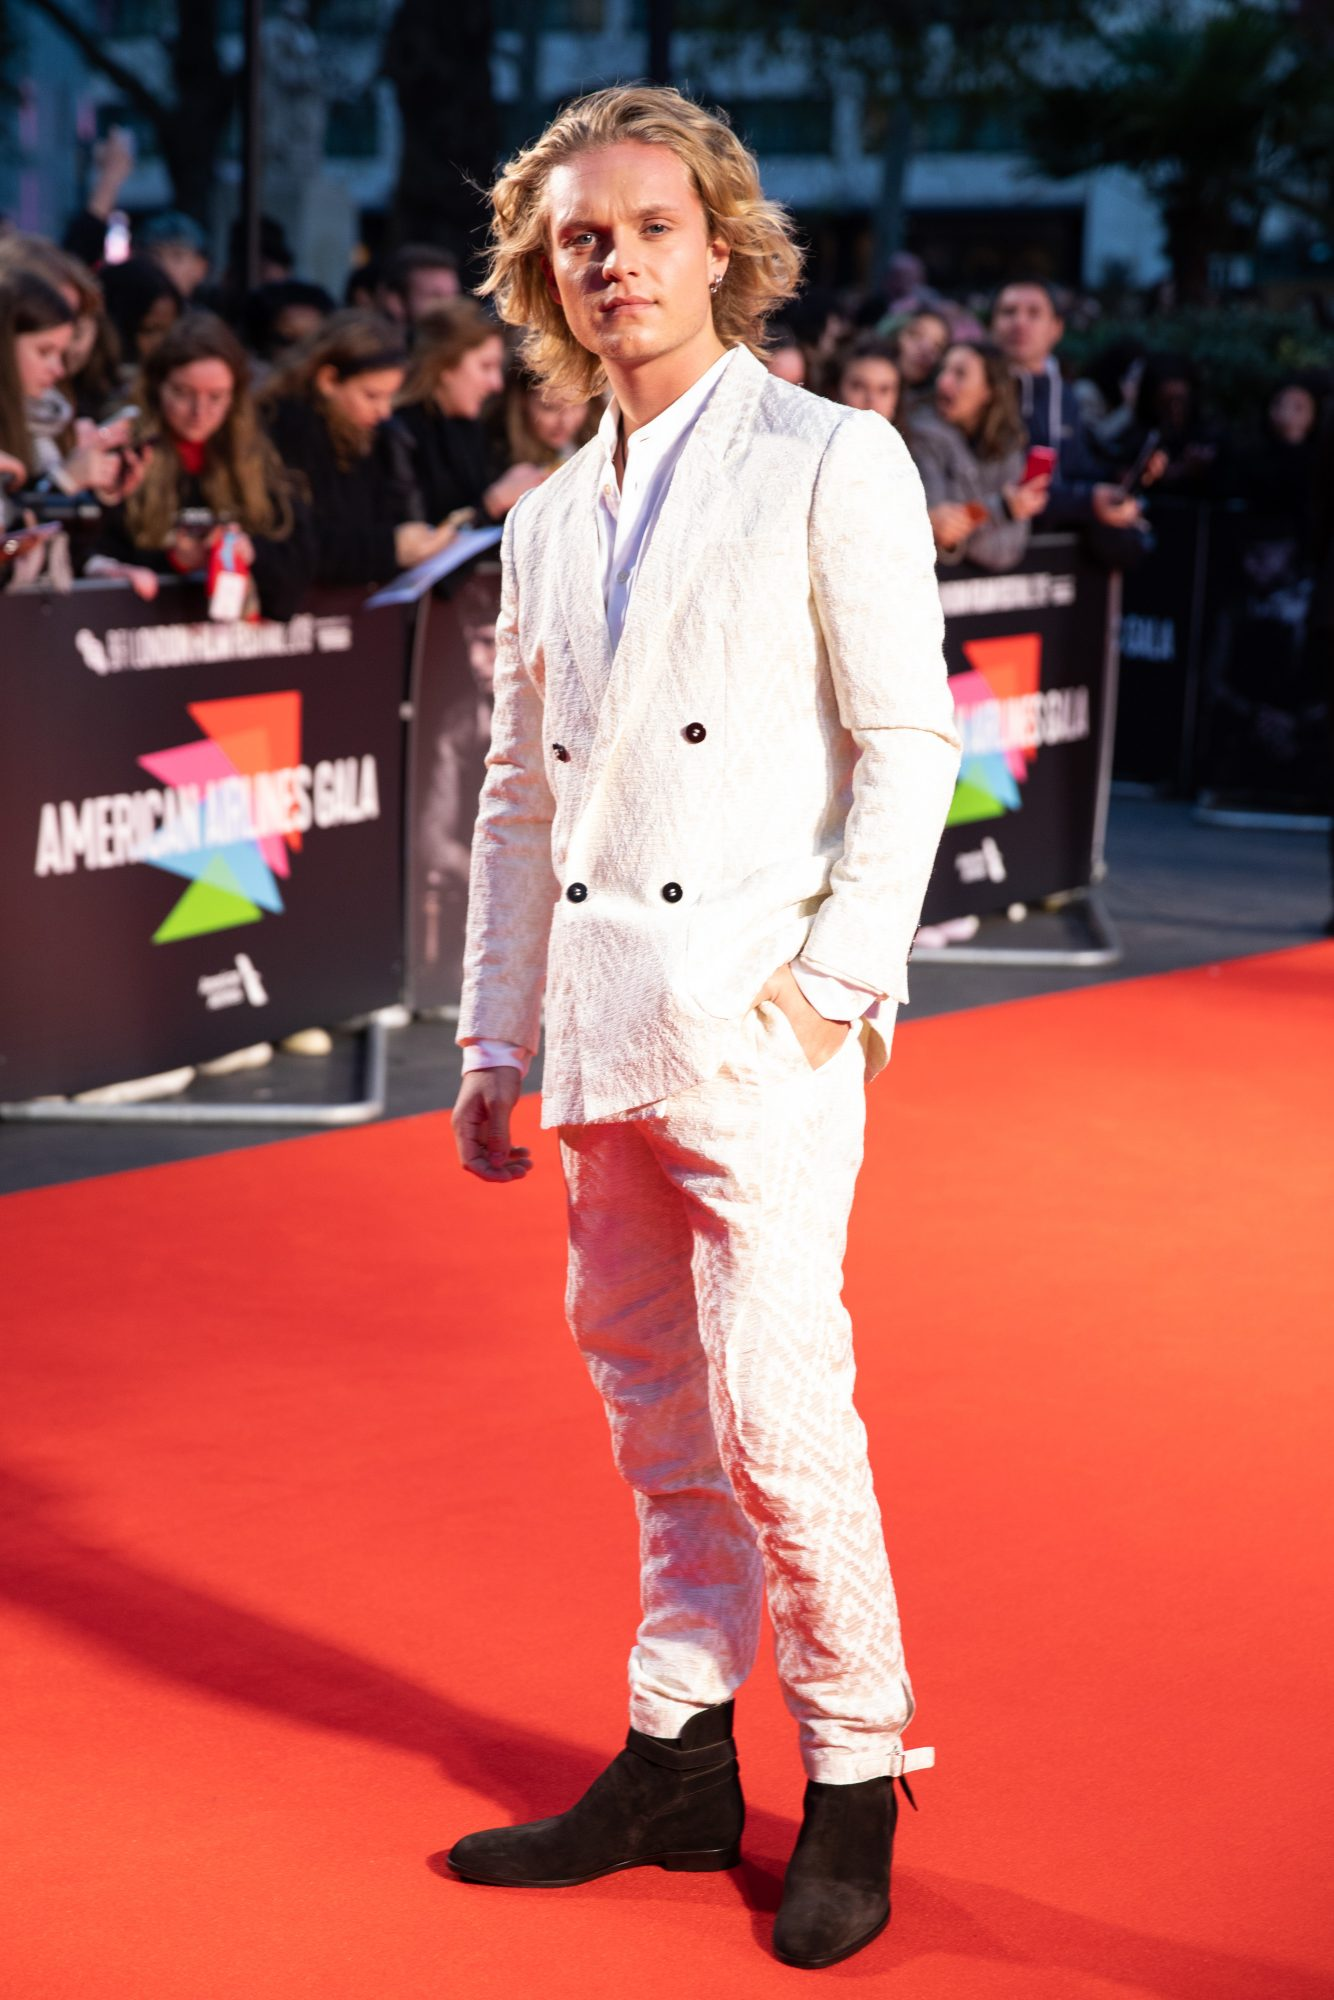 Tom Glynn-Carney at The King UK Premiere during the 63rd BFI London Film Festival at Odeon Luxe Leicester Square on 3rd October 2019.  Photos: Netflix